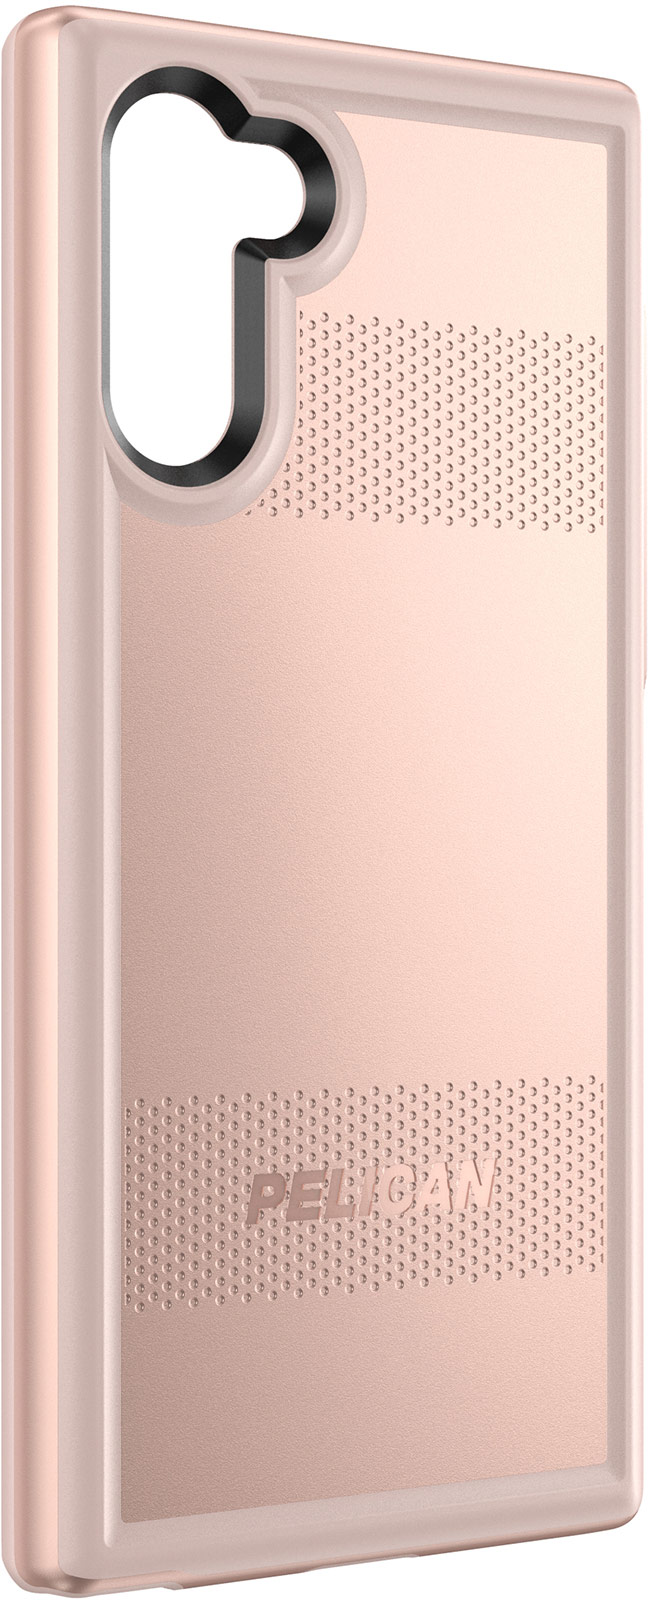 pelican note 10 protector phone case rose gold